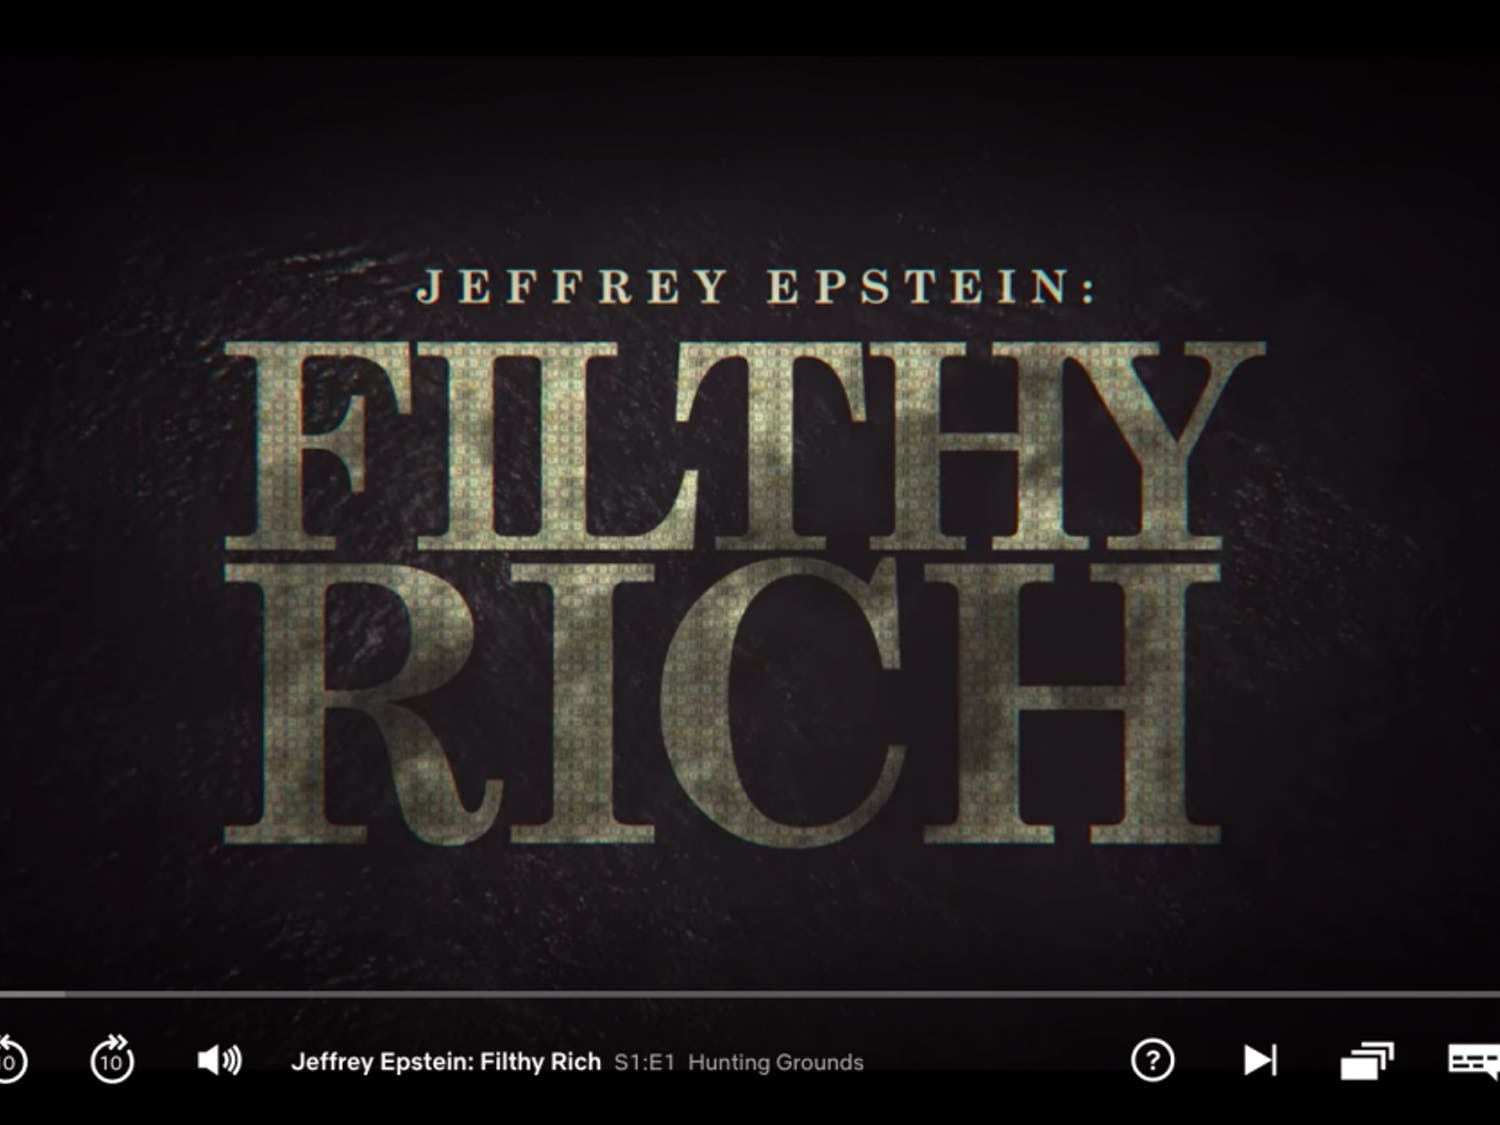 """The new Netflix docuseries """"Jeffery Epstein: Filthy Rich"""" was released on May 27."""